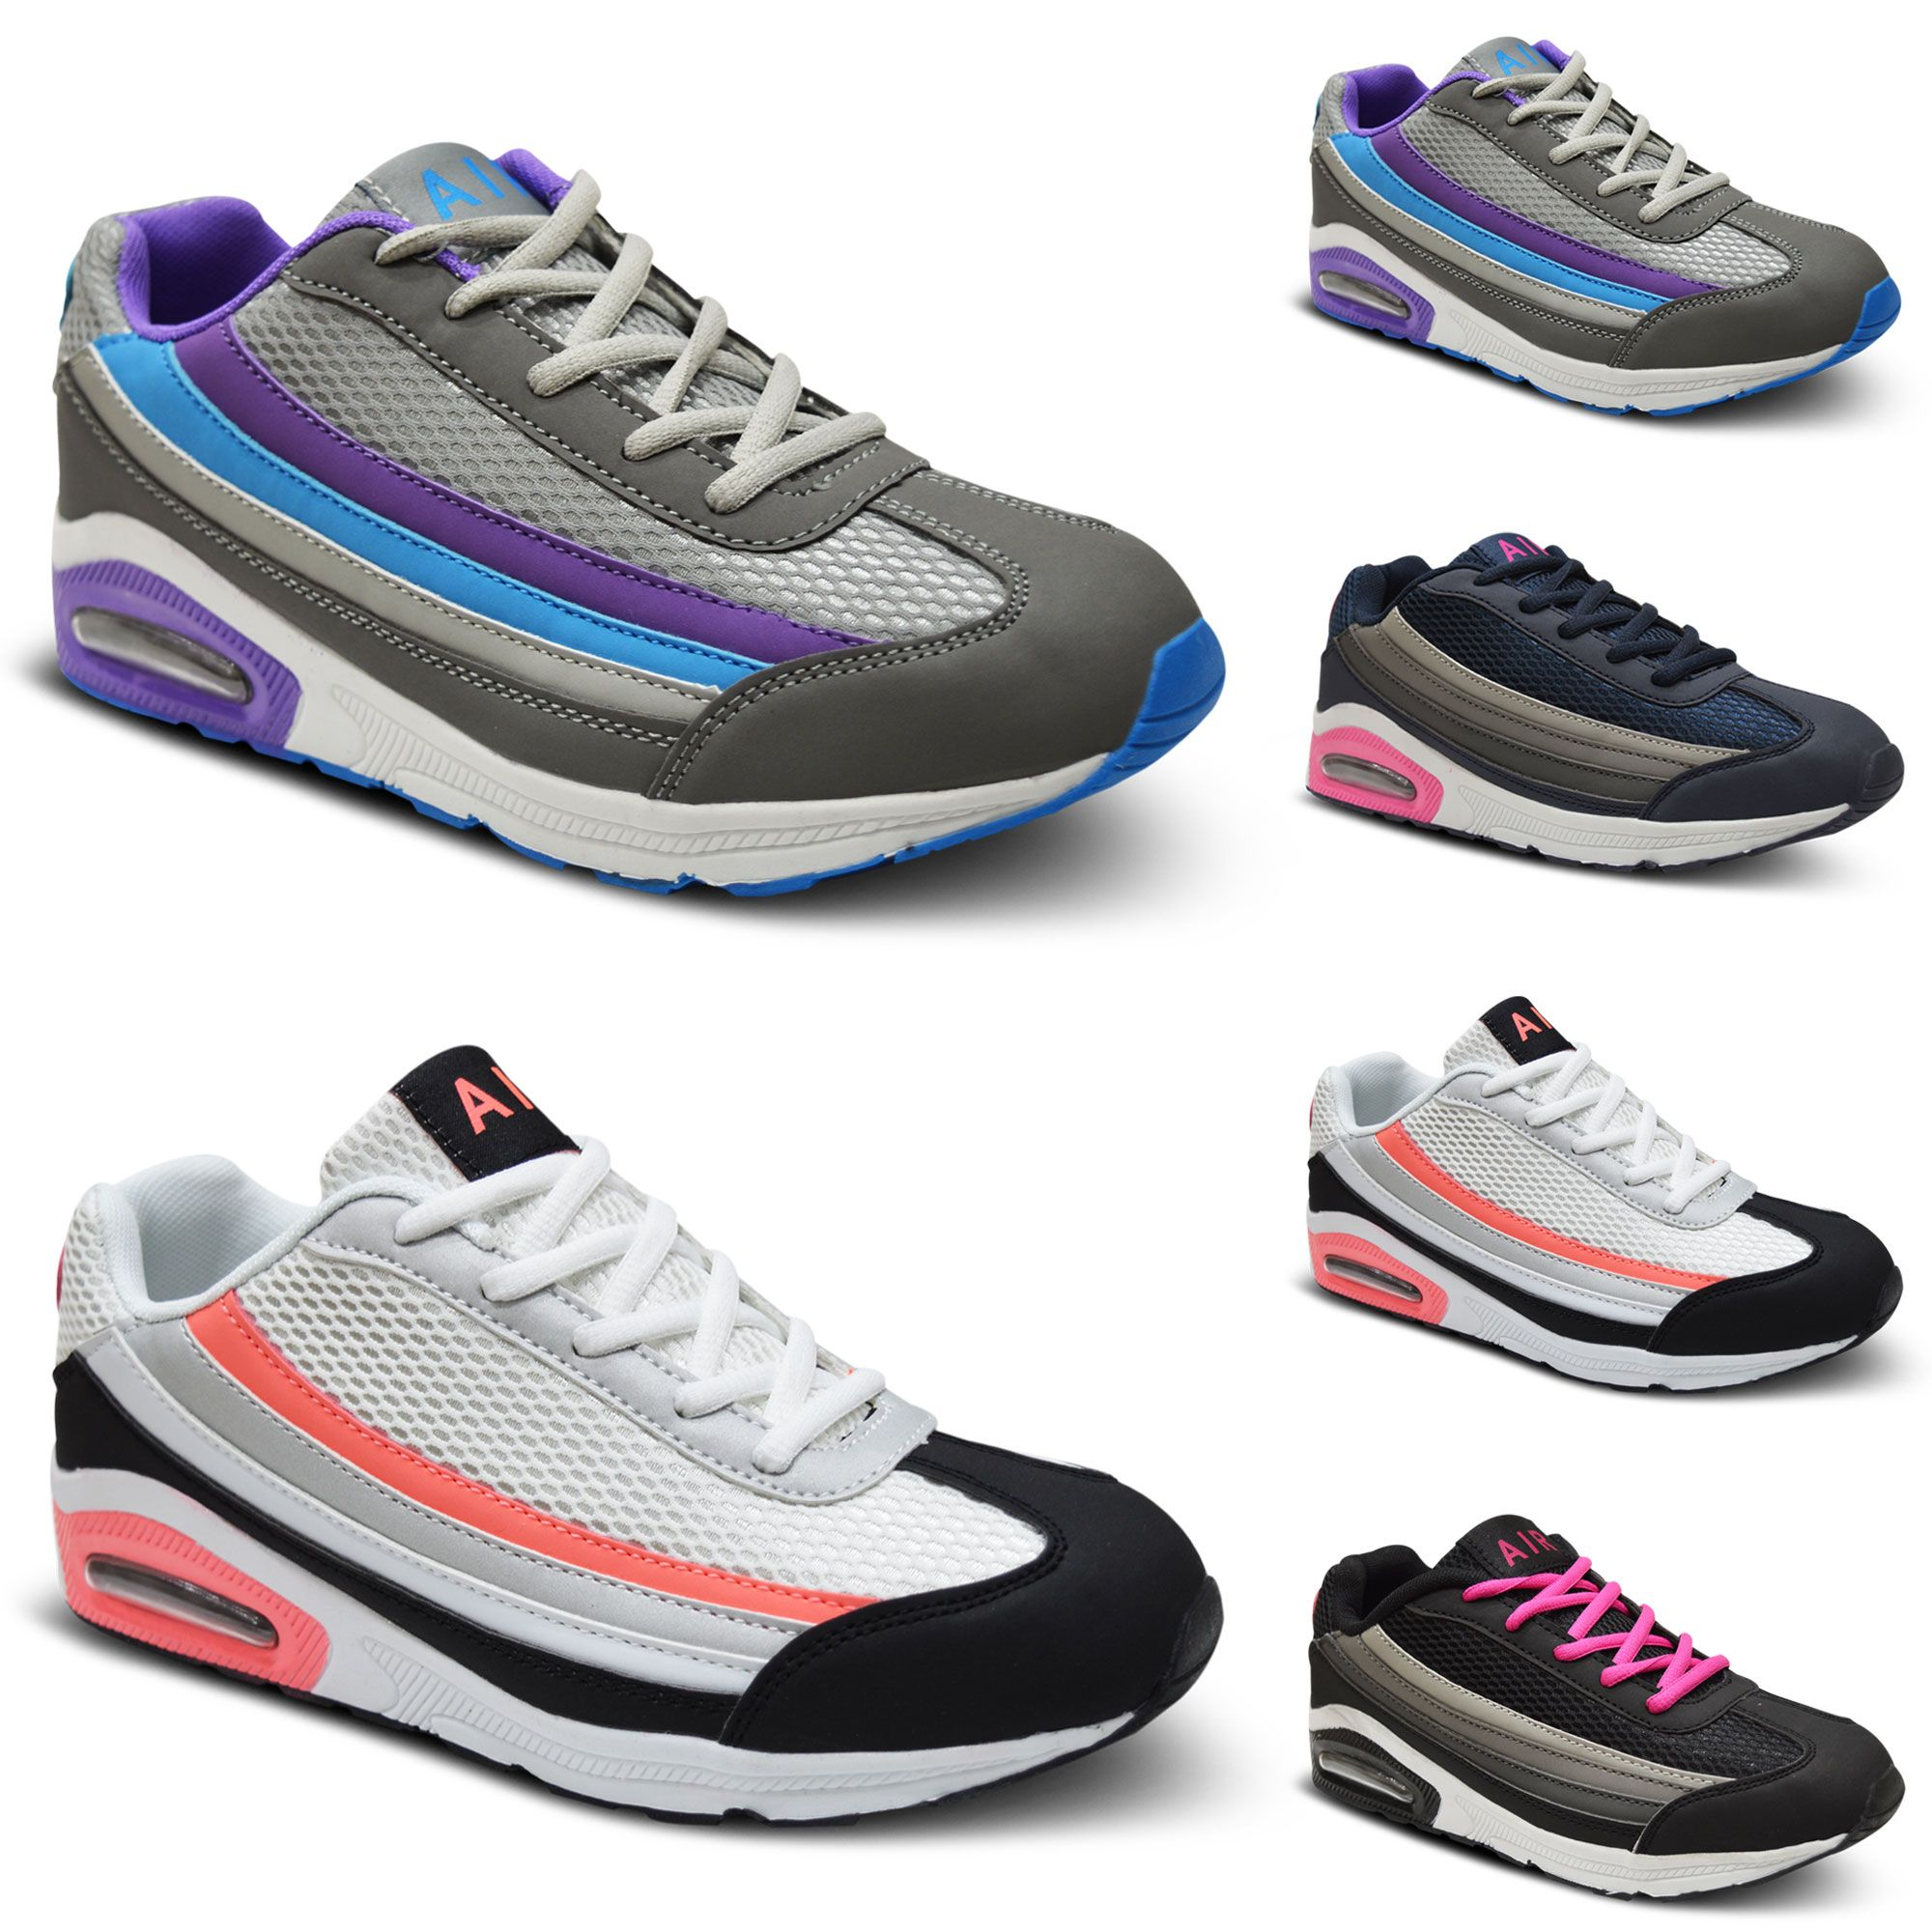 Womens Ladies Lace Up Trainers Sports Walking Gym Shock Absorbing Shoes Size 3-8